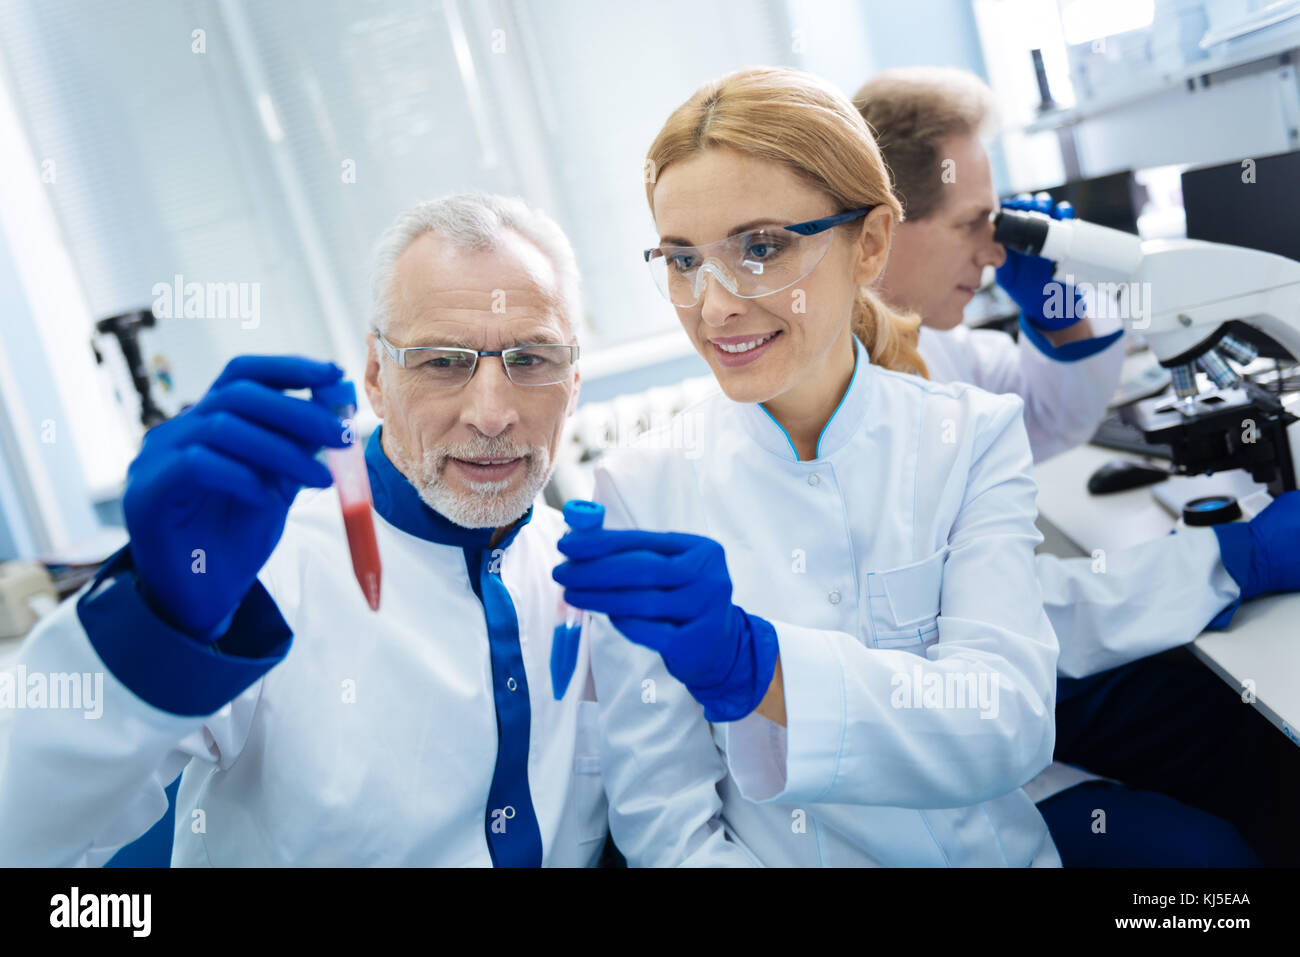 Inspired medical workers holding test tubes - Stock Image